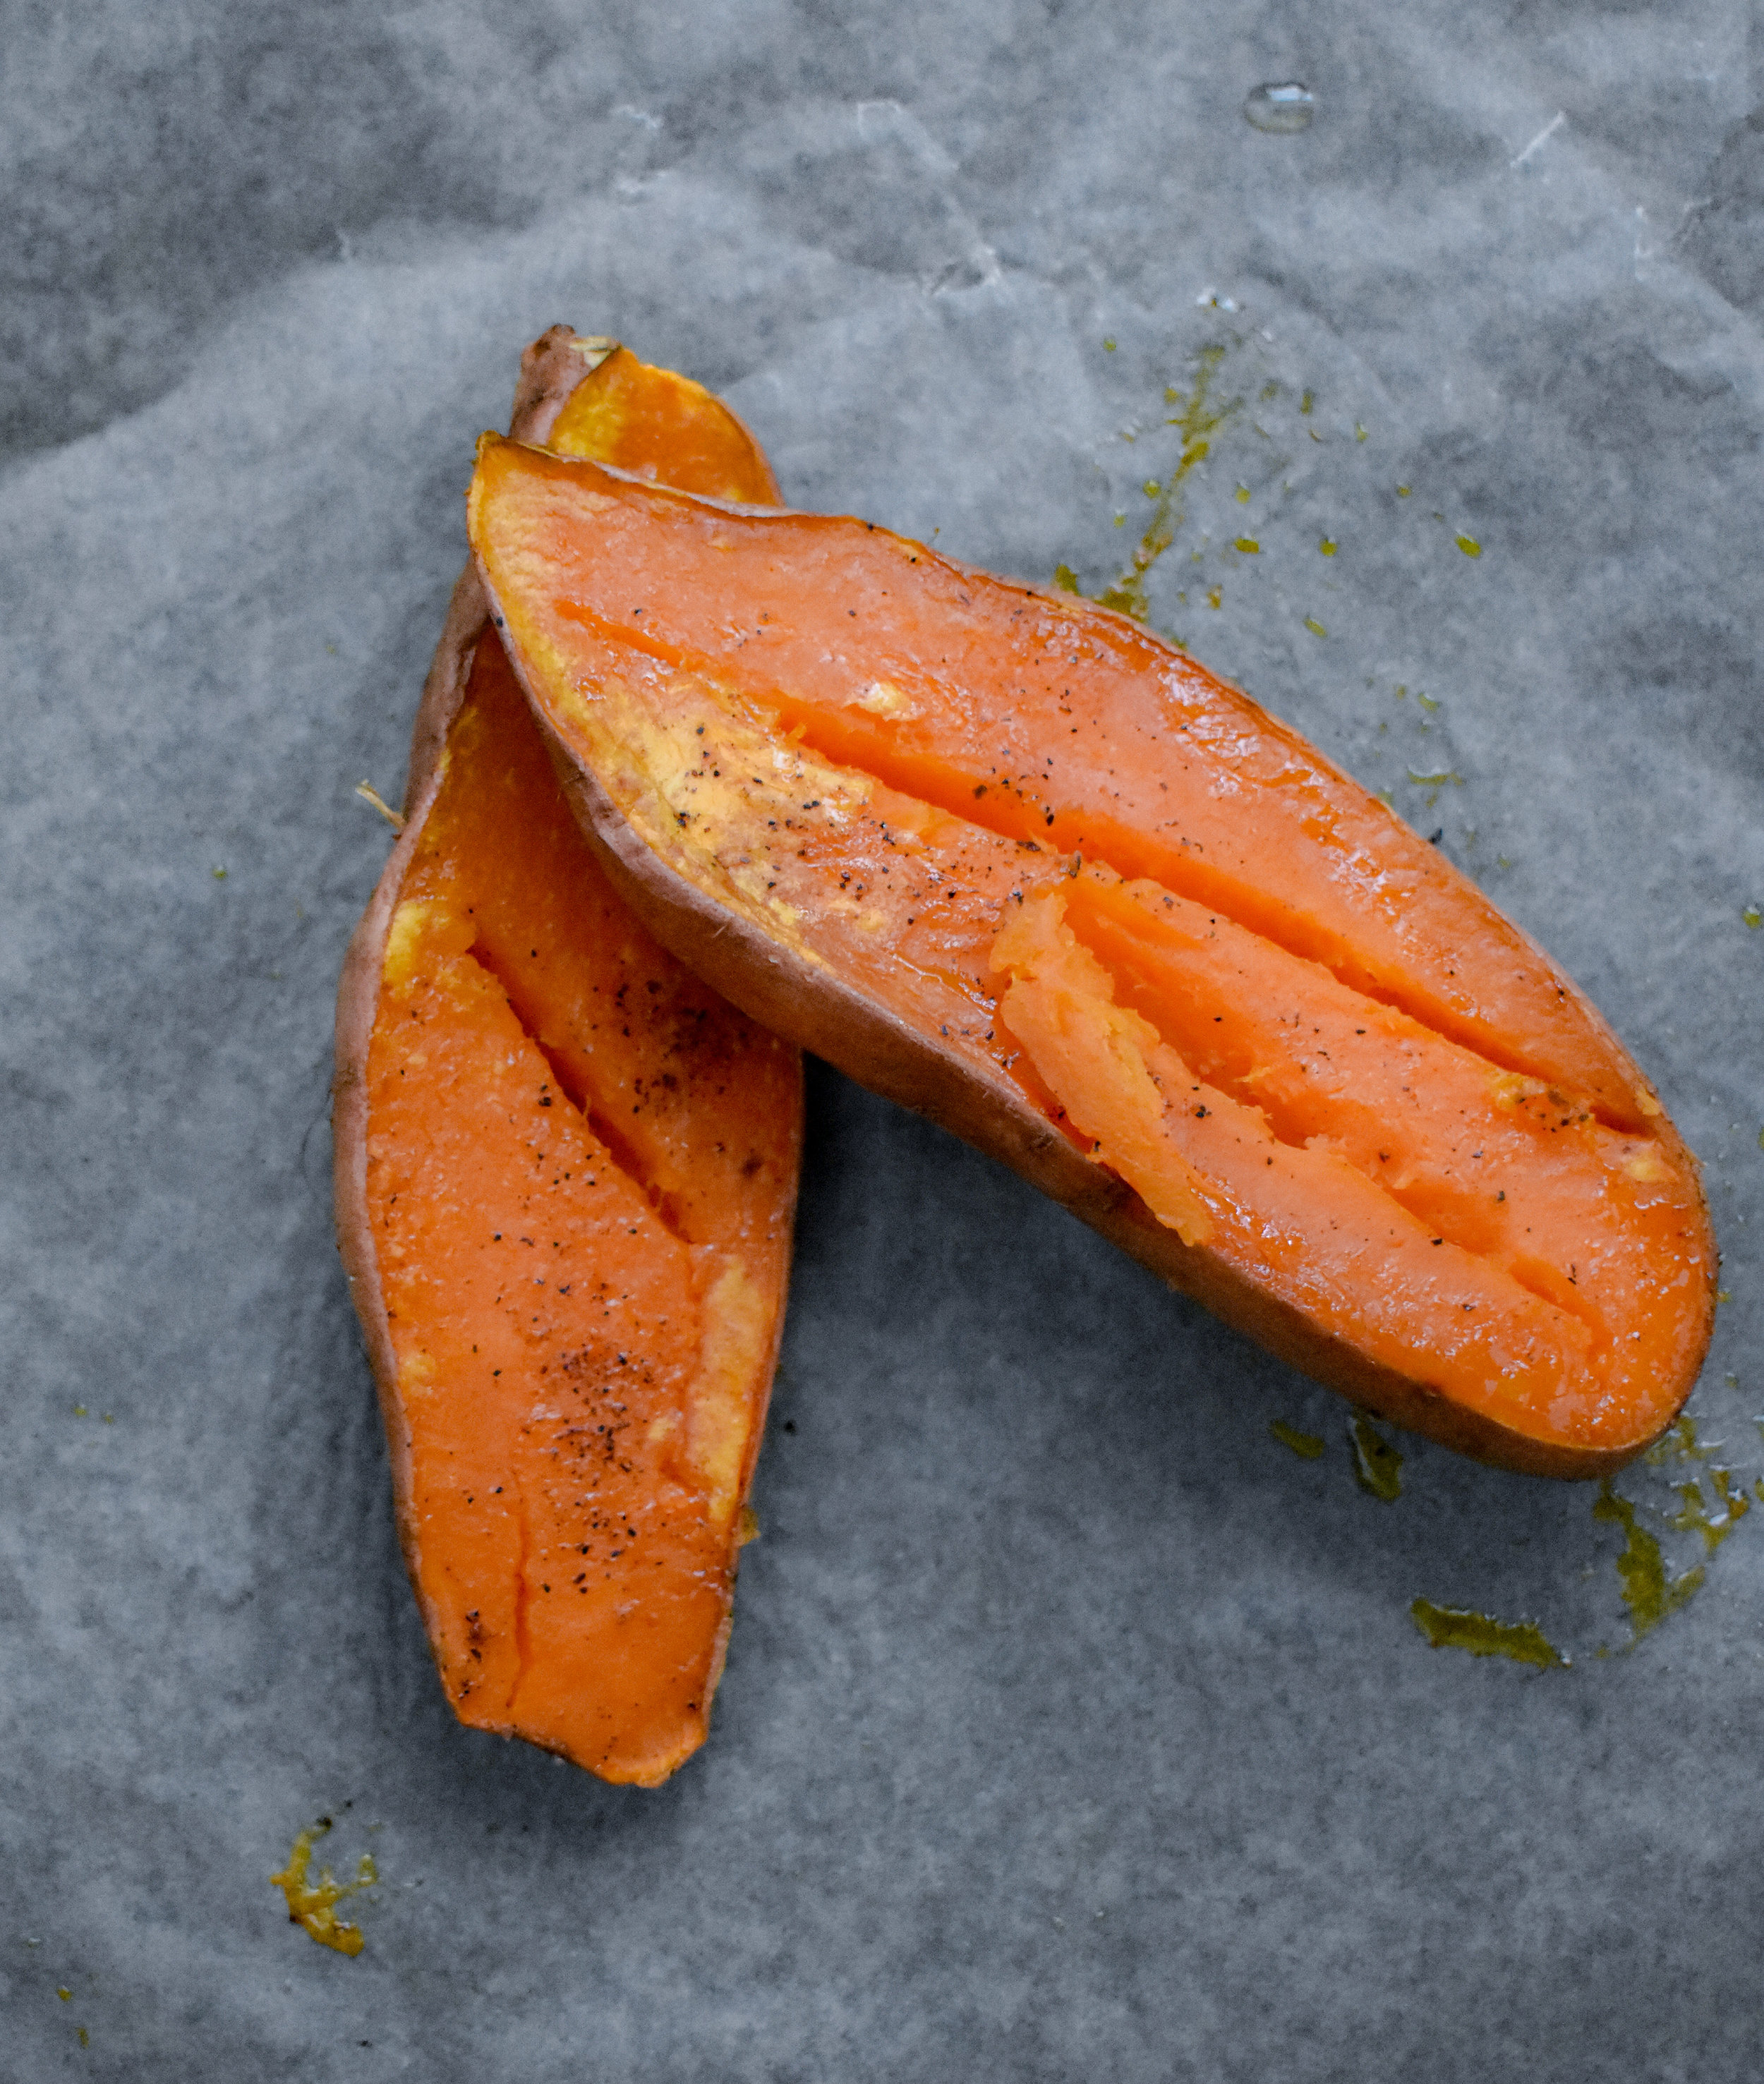 1. Chop sweet potato in half and rub with olive oil. Place face down on parchment paper lined baking sheet and bake at 400F for 40 minutes or so until fork soft.